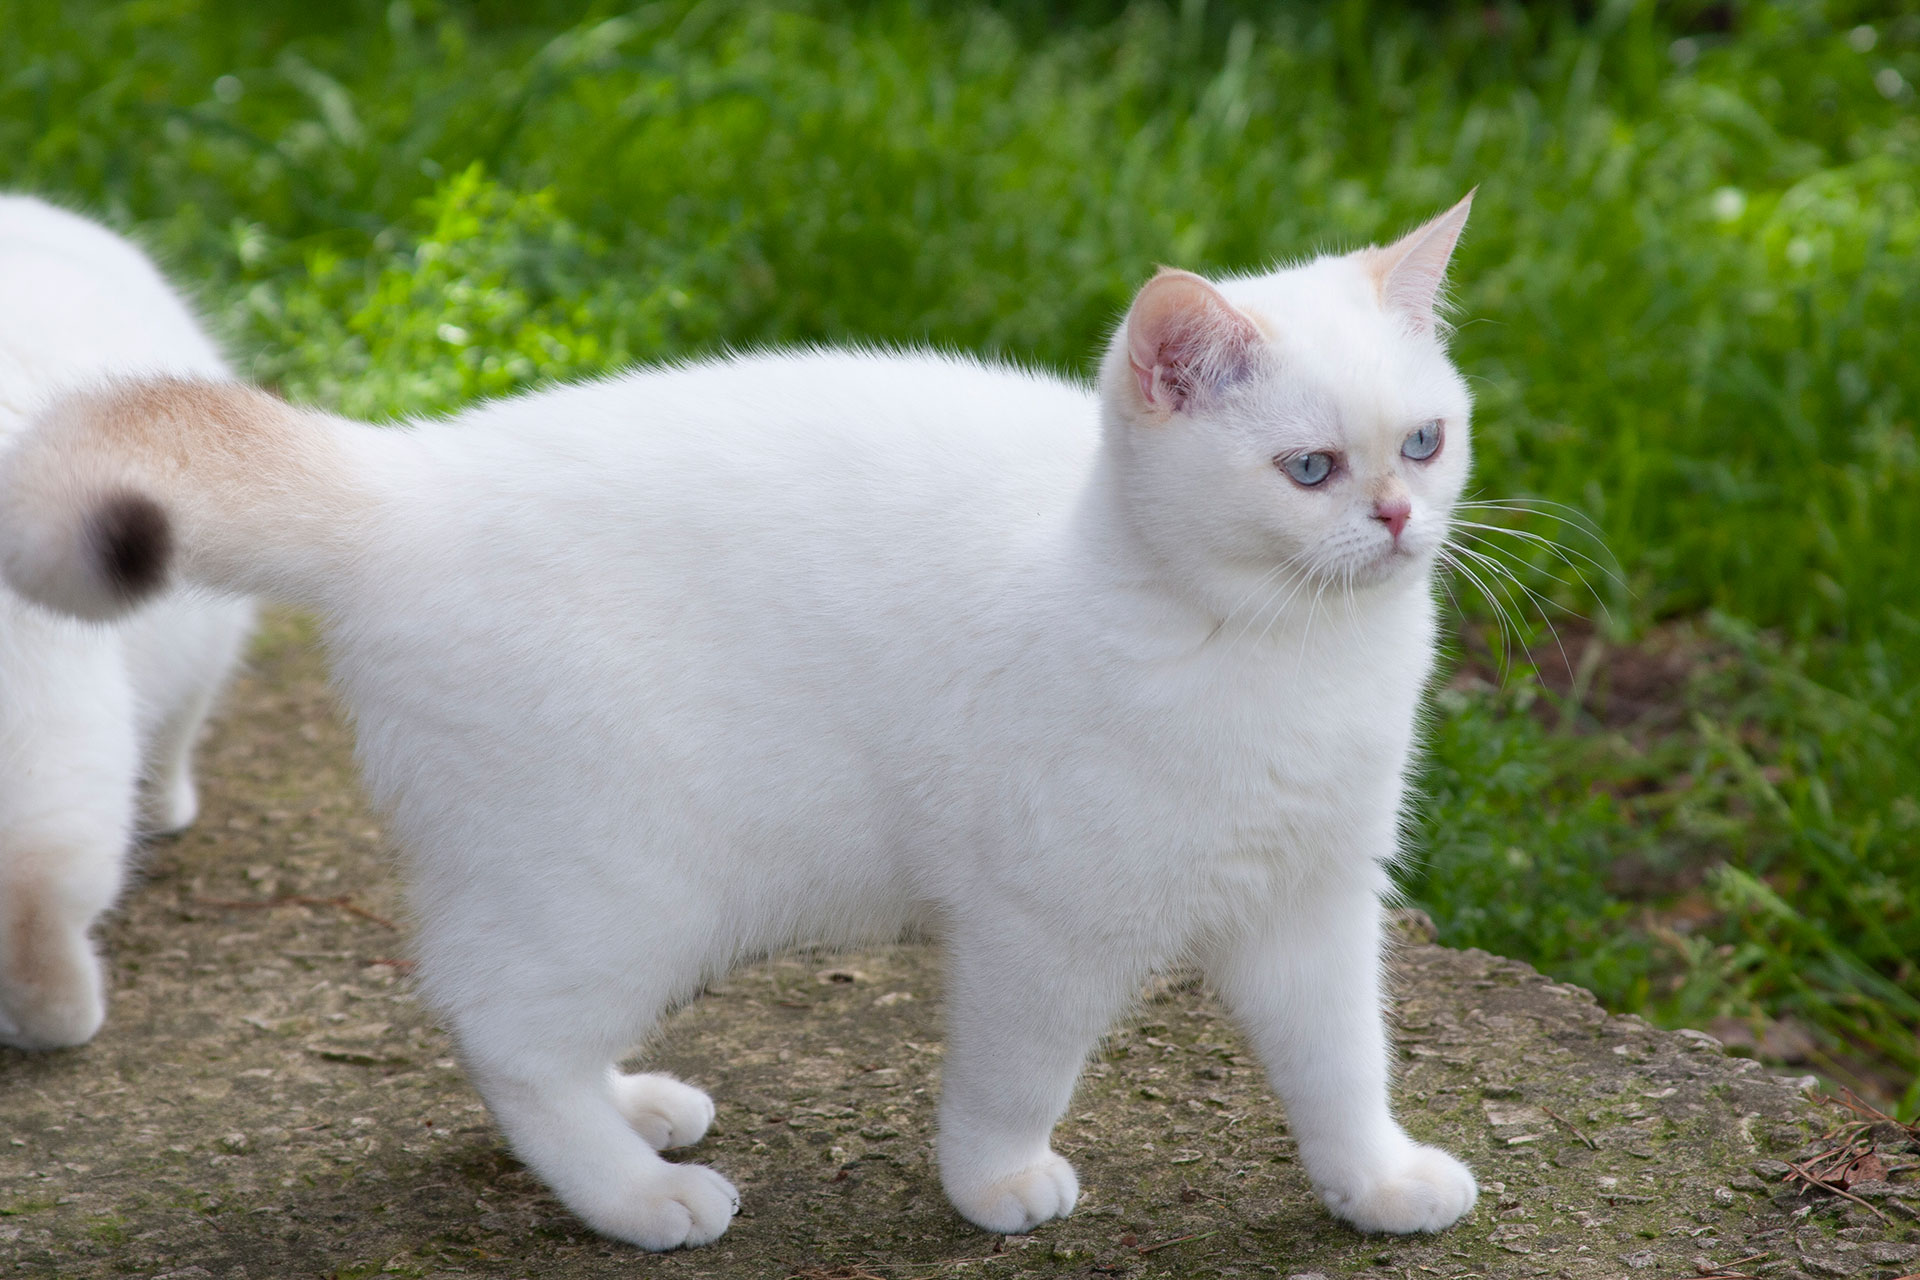 The female cat Riona Snowflake SunRay